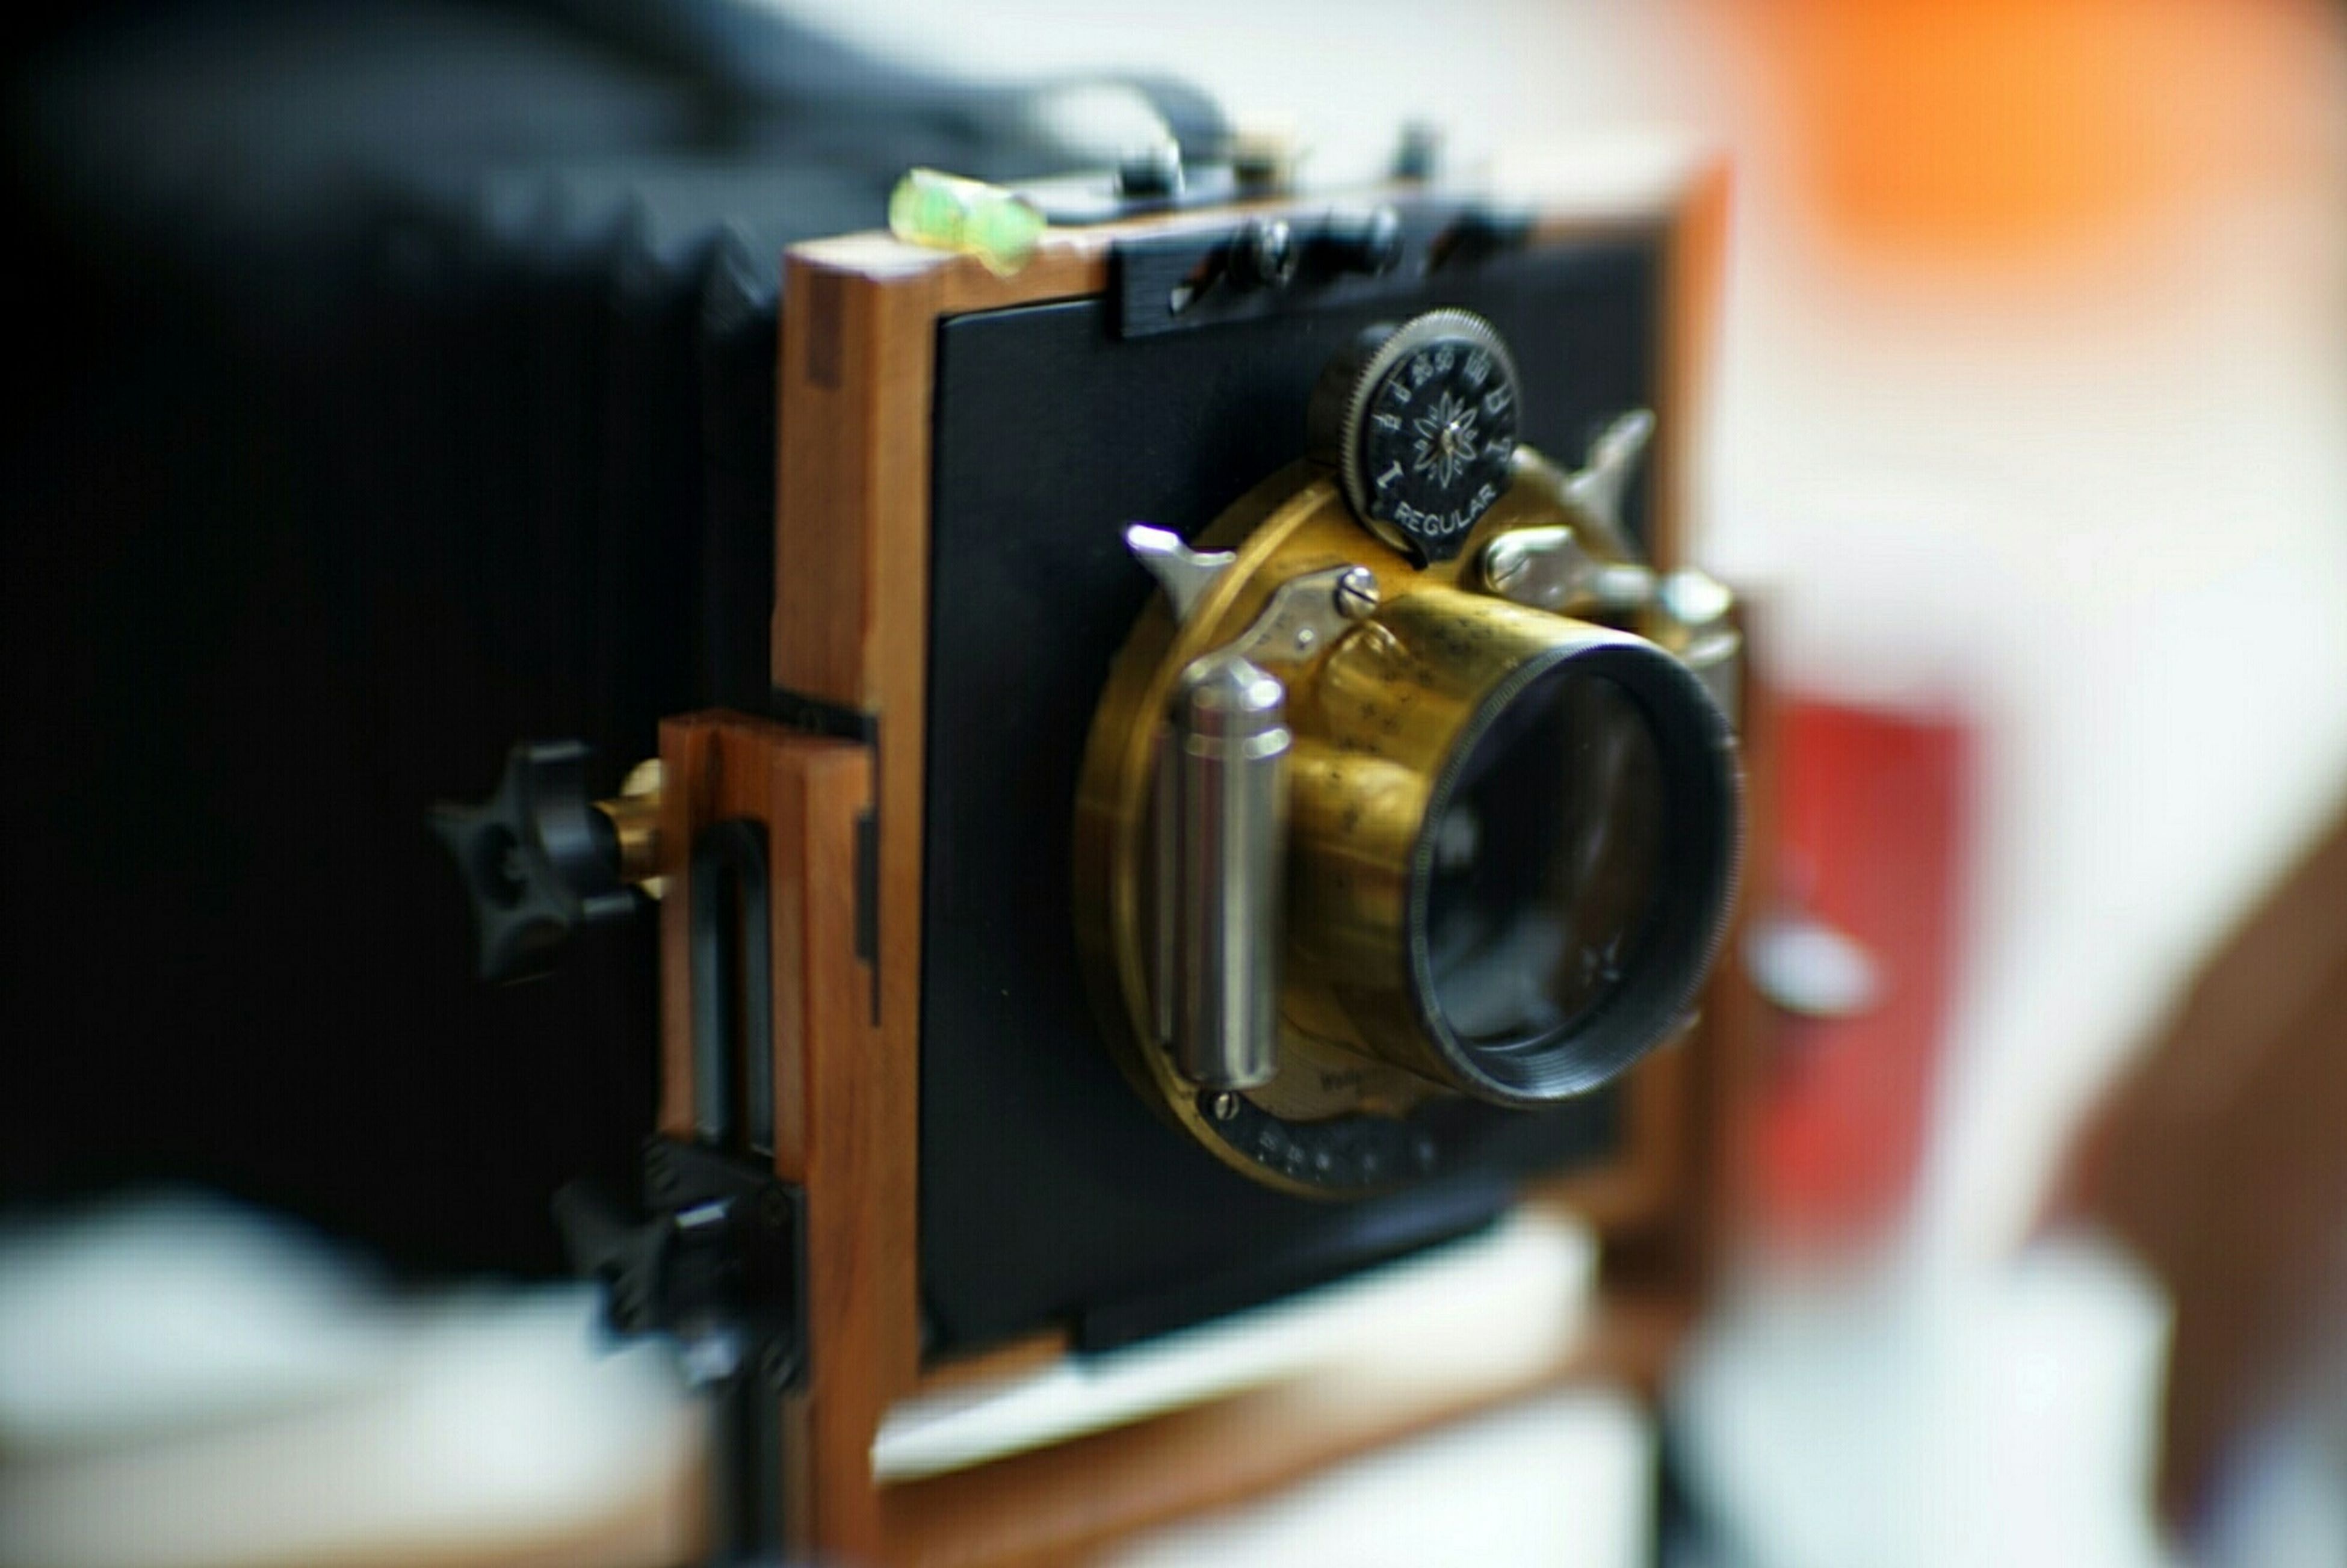 focus on foreground, selective focus, close-up, indoors, technology, old-fashioned, retro styled, metal, photography themes, camera - photographic equipment, equipment, antique, machinery, music, no people, still life, metallic, arts culture and entertainment, single object, table